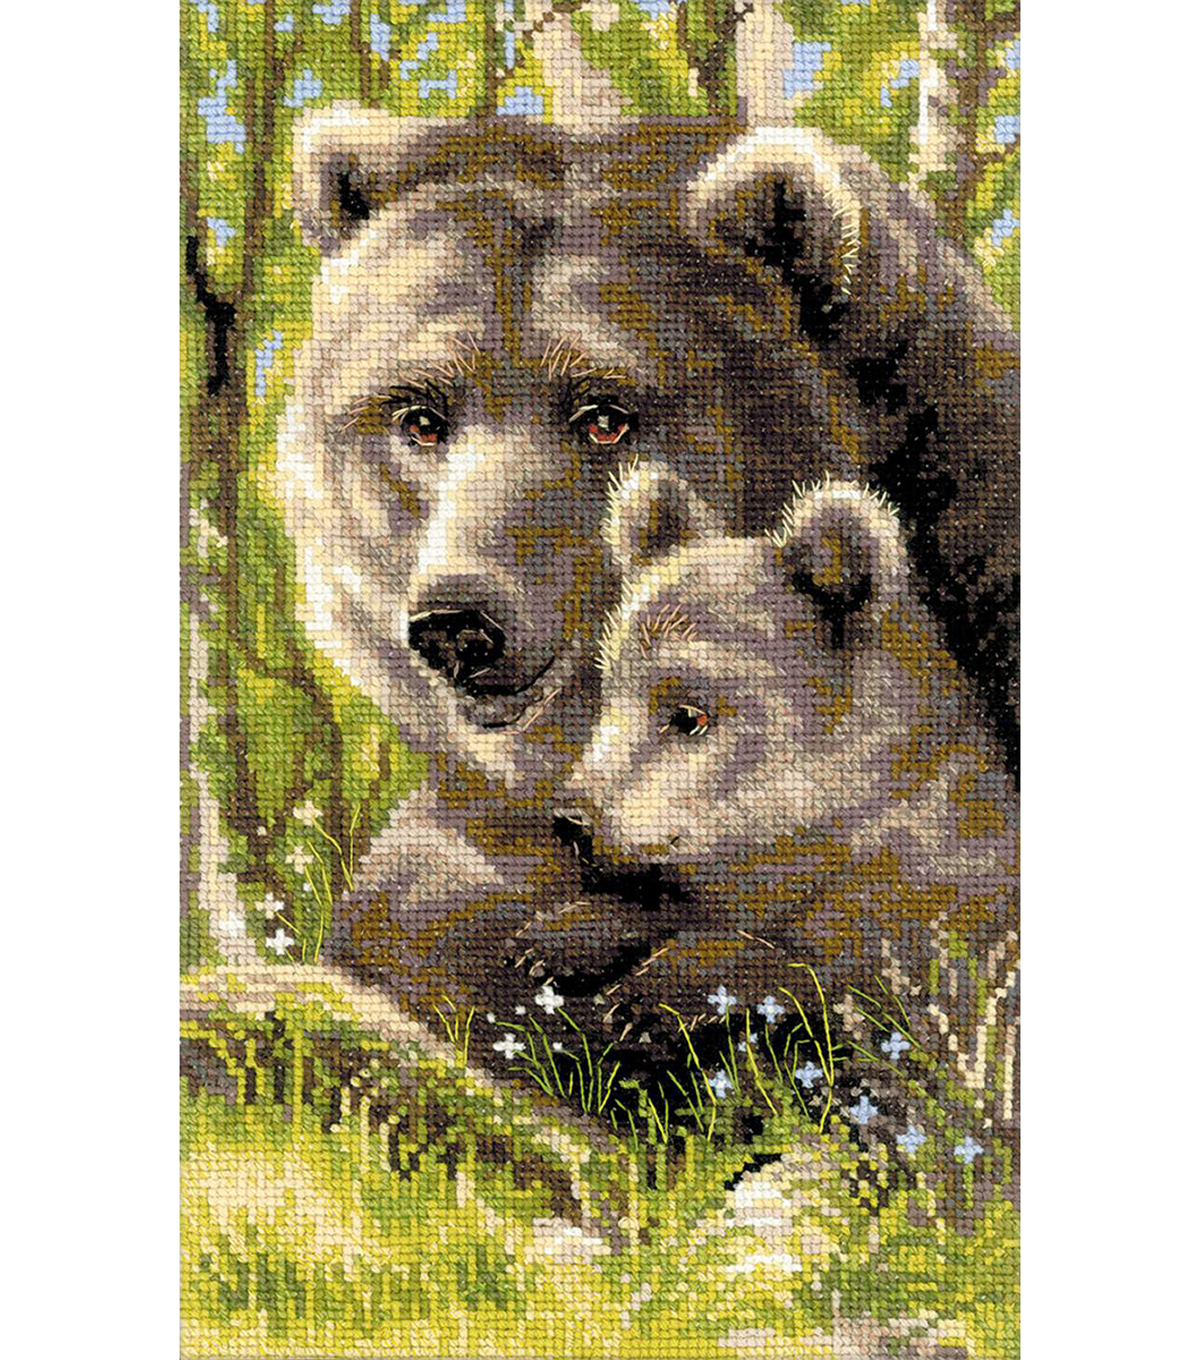 Bear With Cub Counted Cross Stitch Kit 10 Count